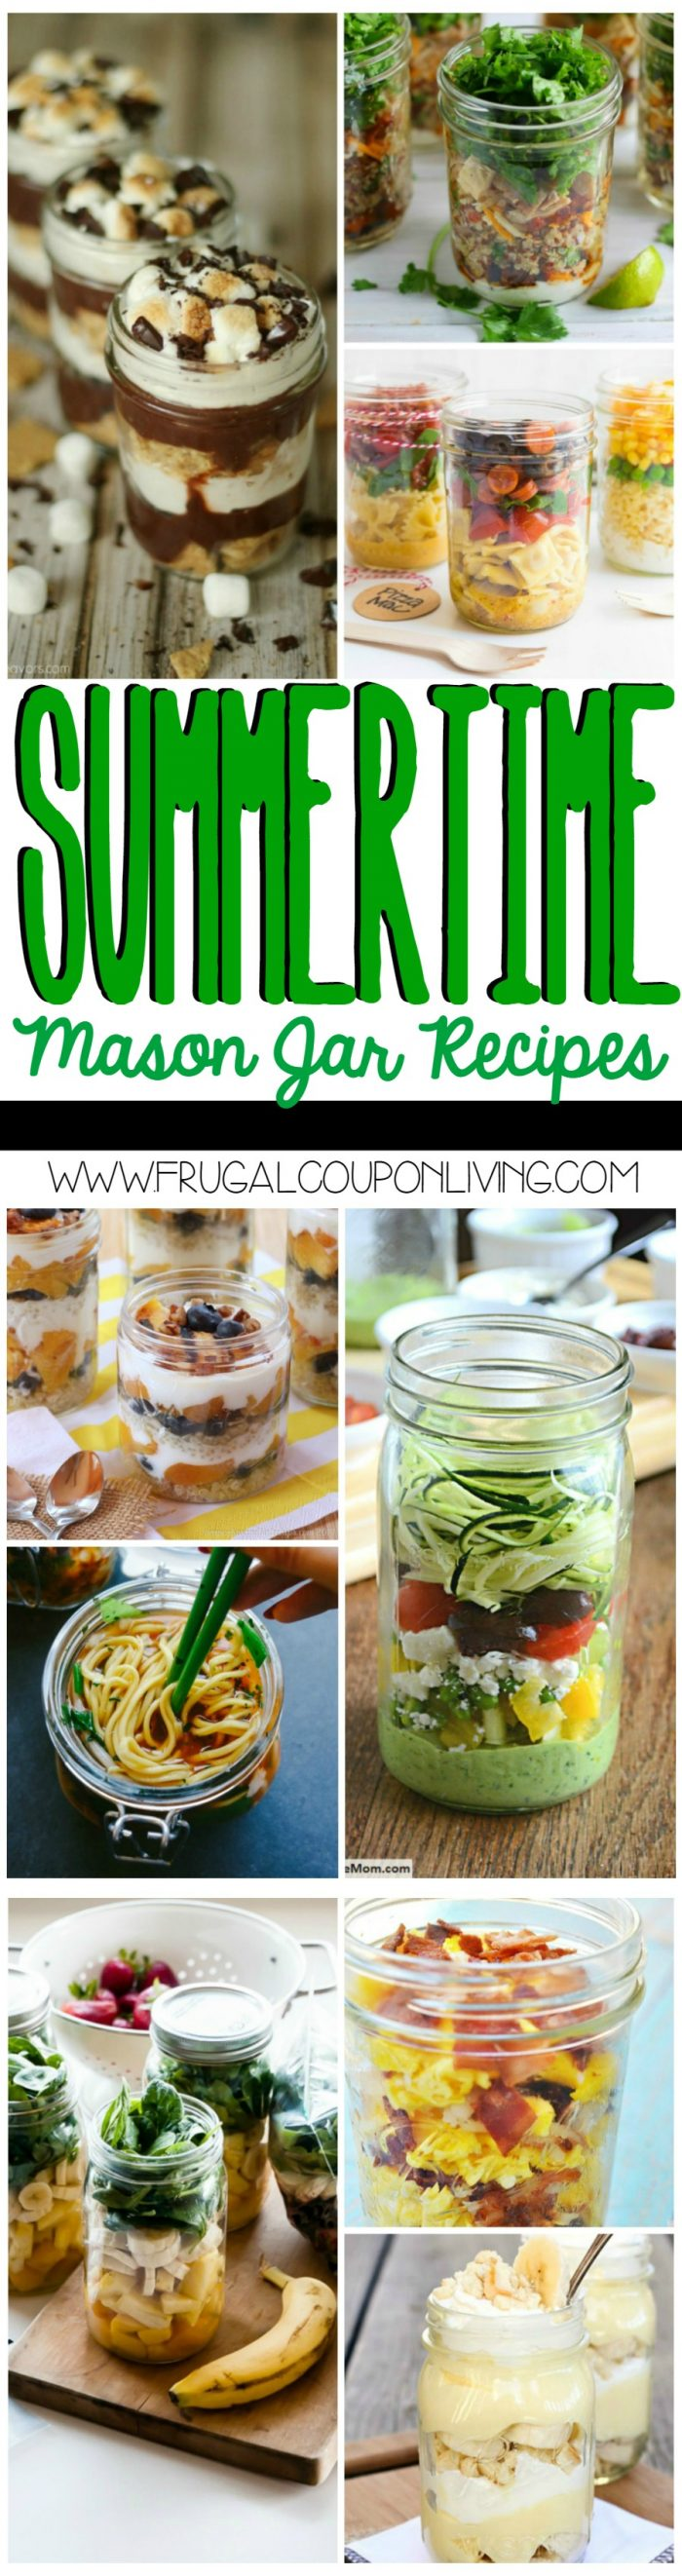 summertime-mason-jar-recipes-frugal-coupon-living-large-collage